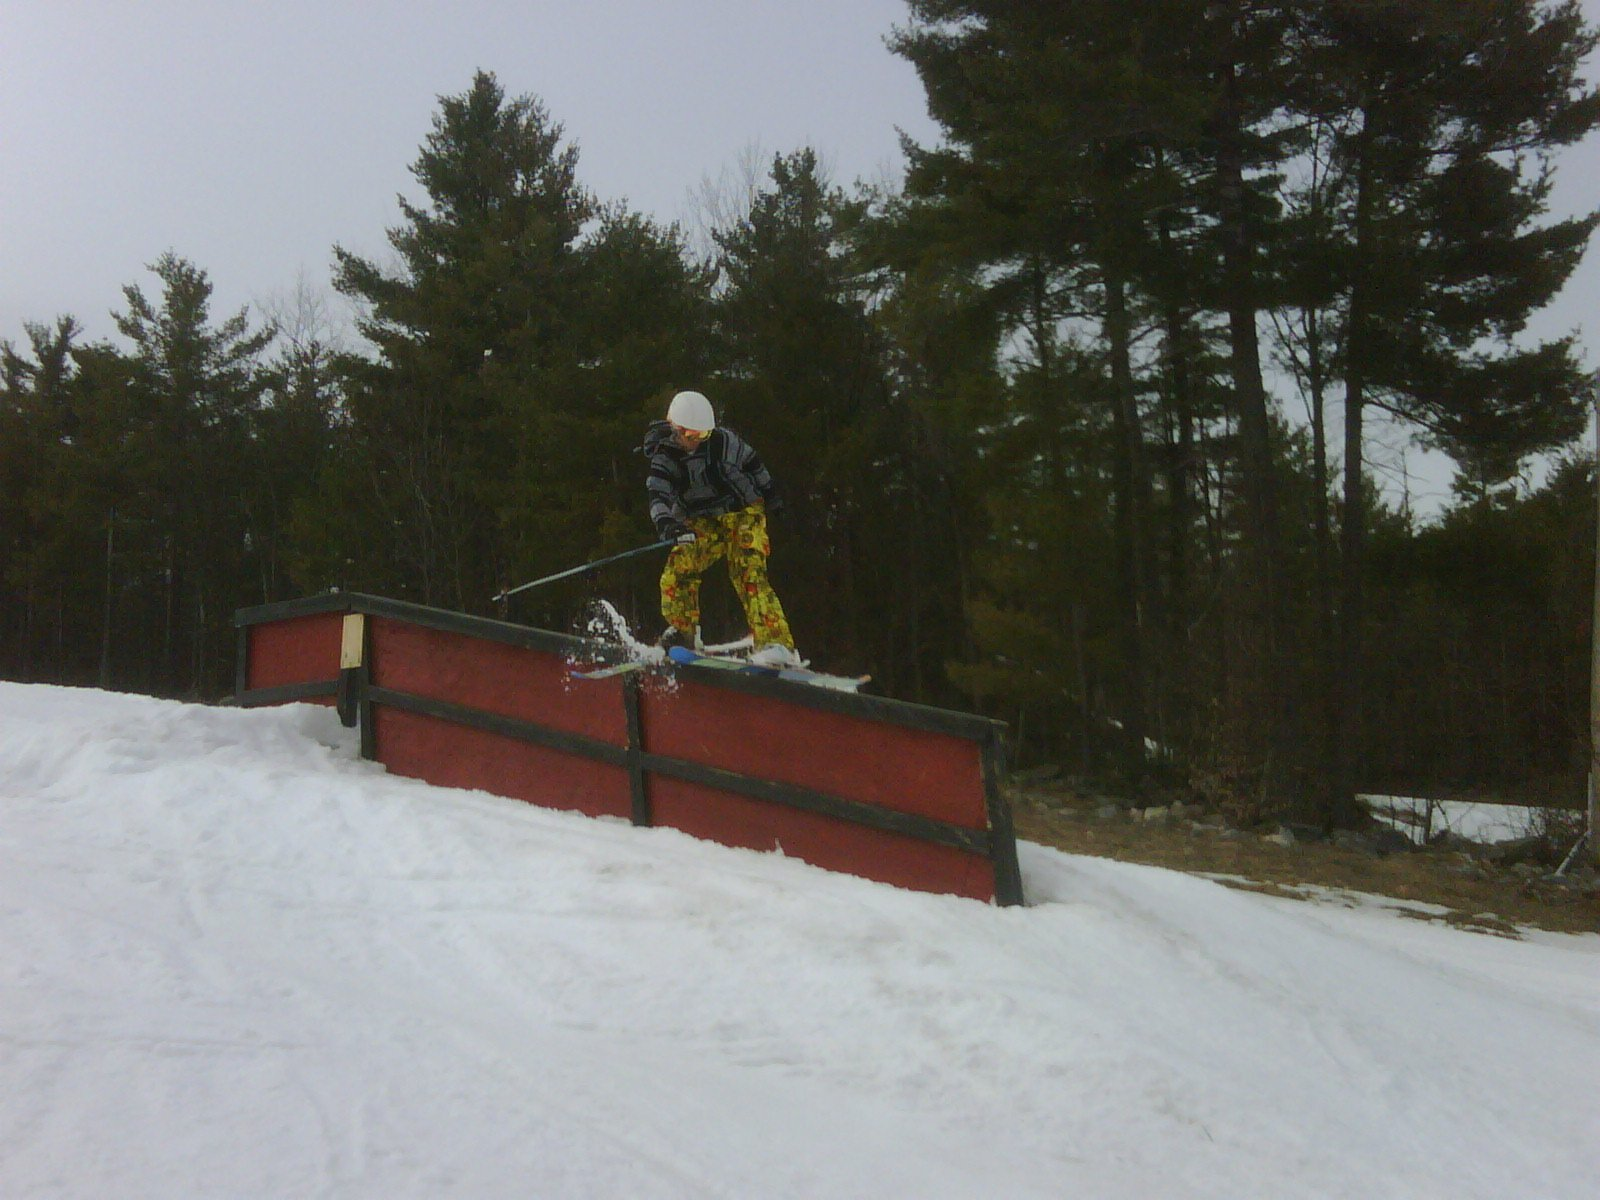 Spring skiing, doing the handrail